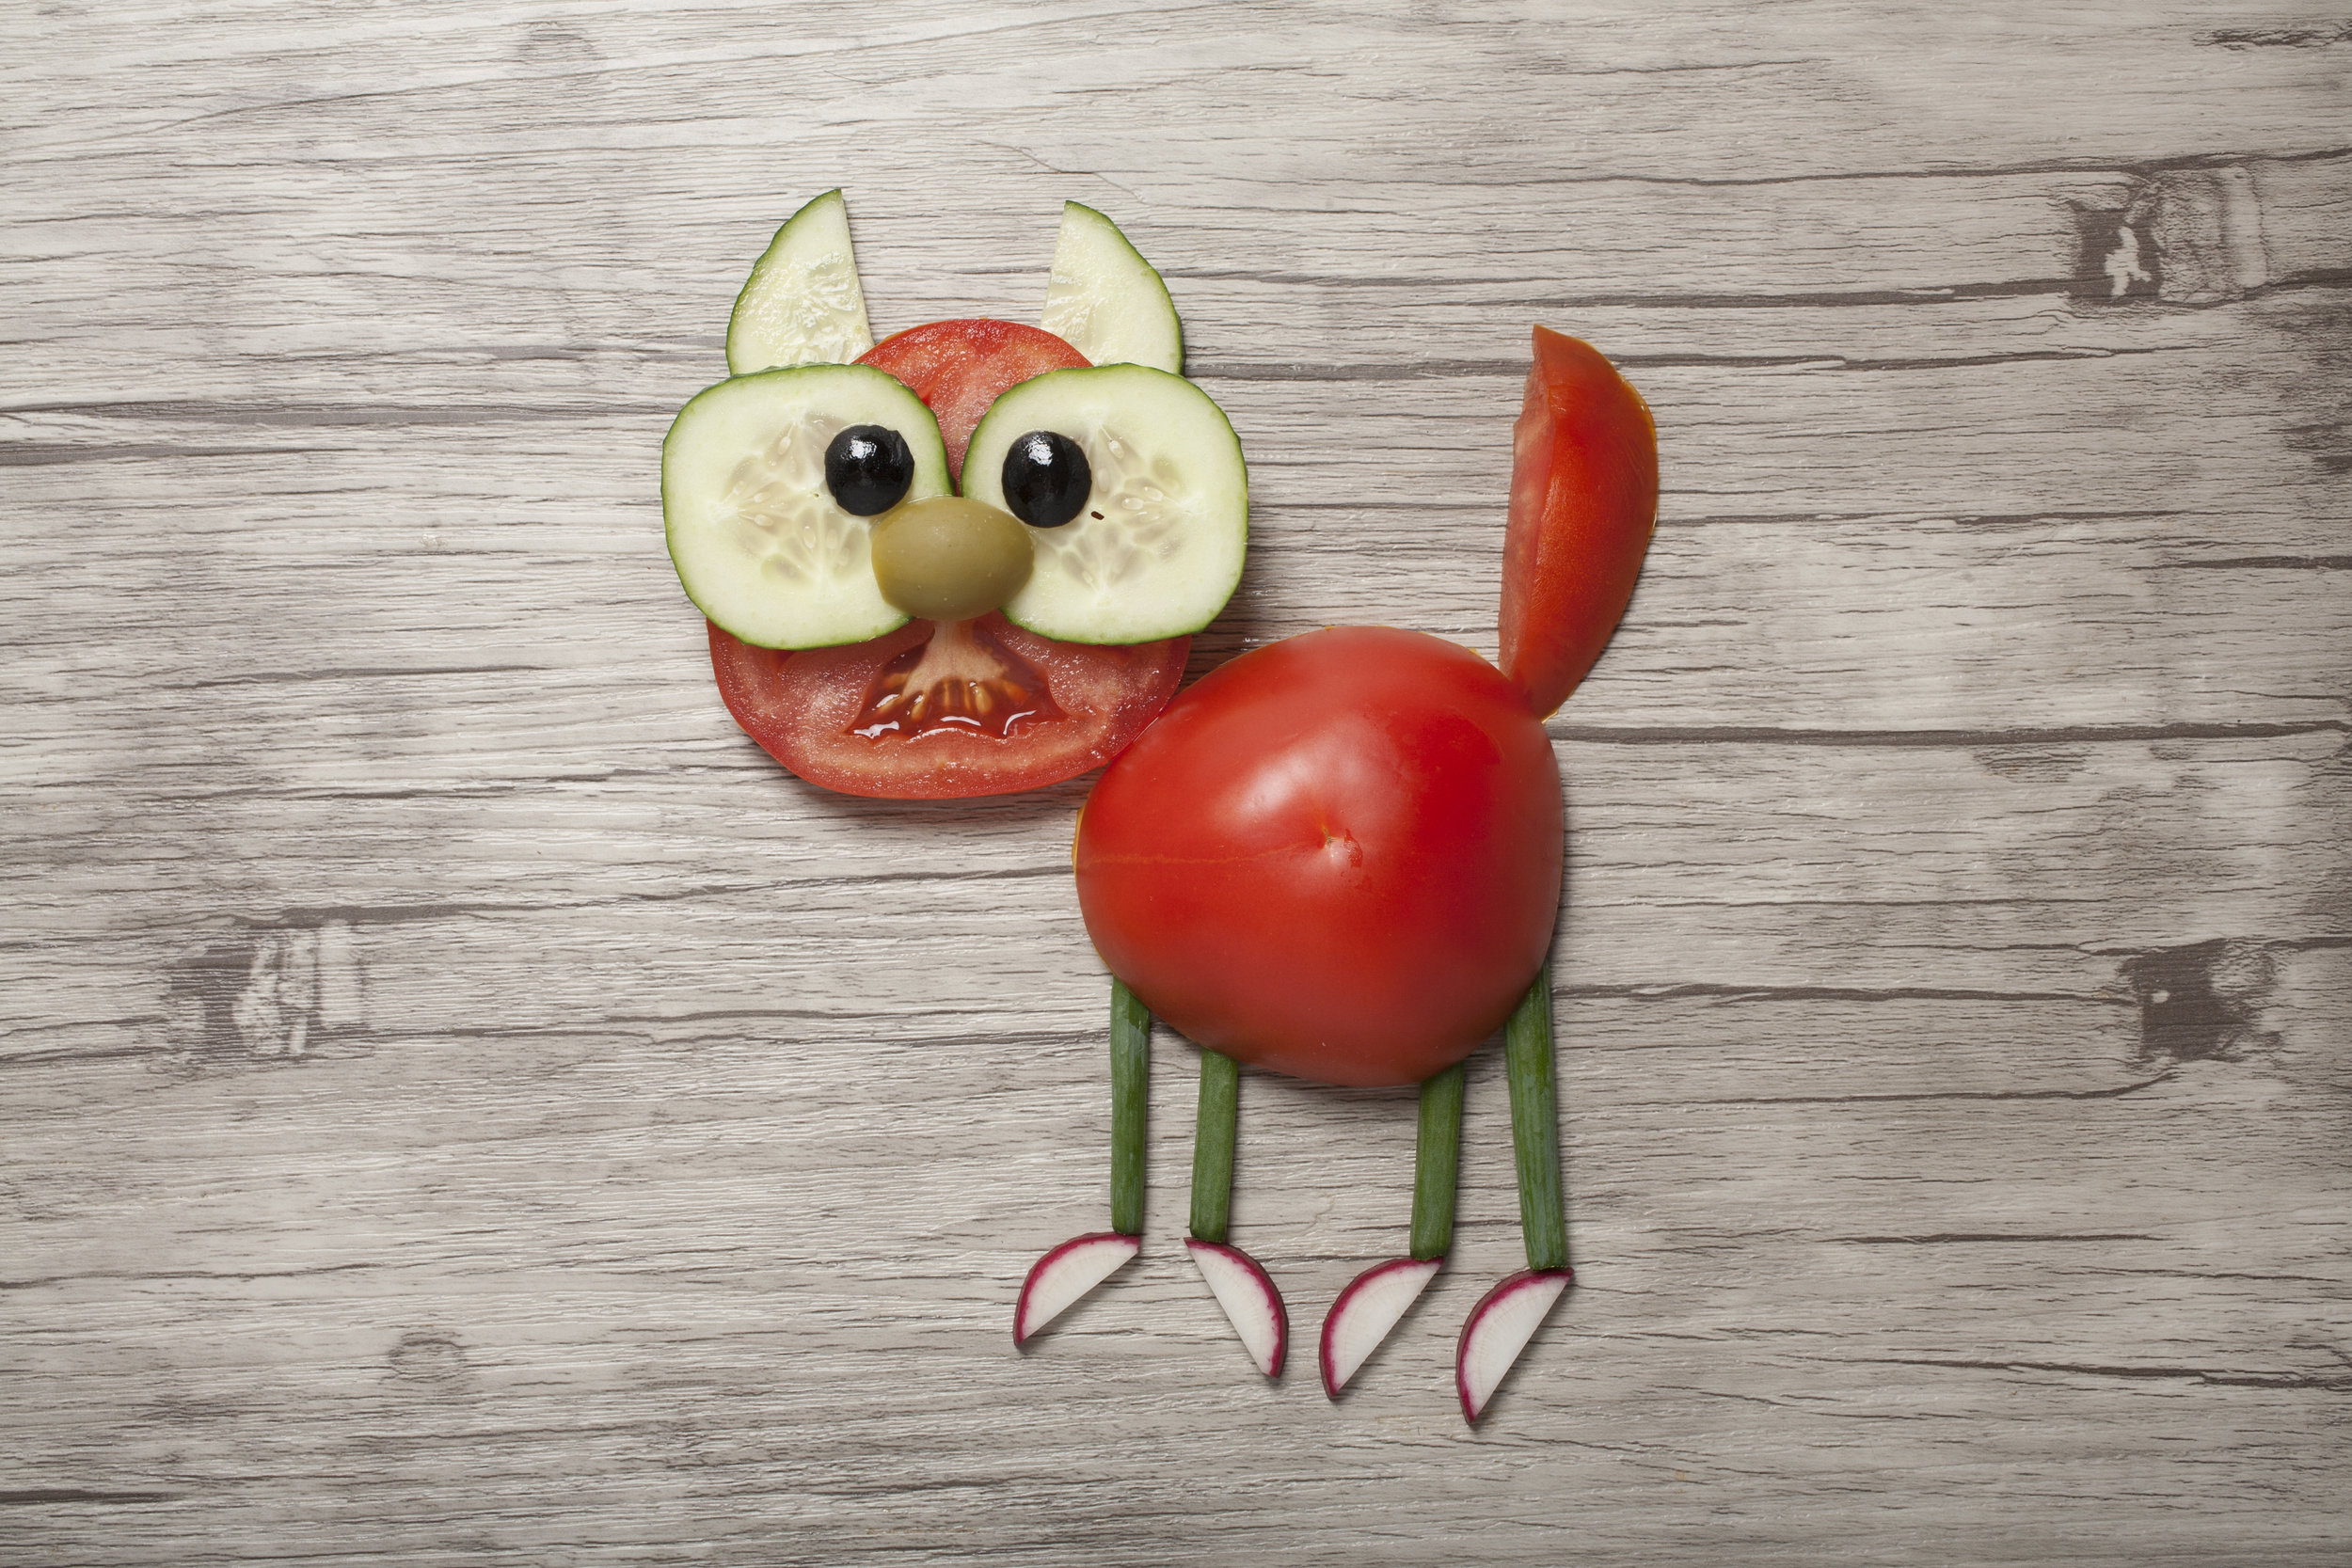 vegetable cat figure.jpg